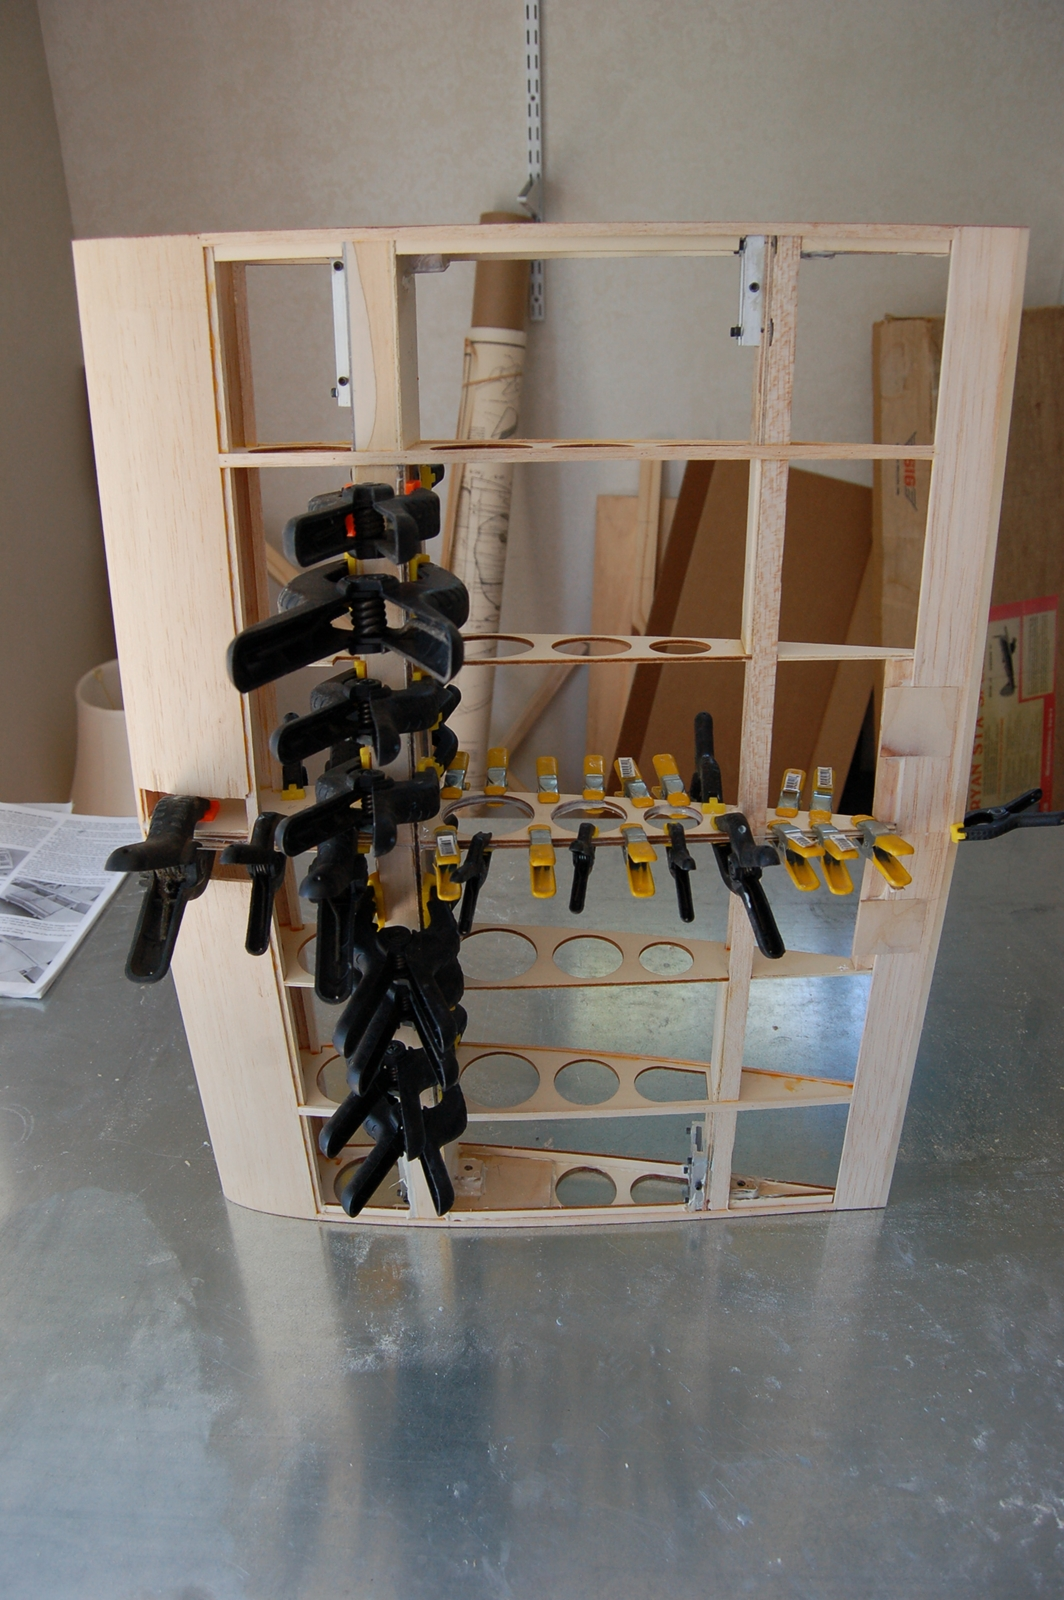 Click image for larger version  Name:m_Center section glue up 001.jpg Views:94 Size:1.04 MB ID:1994111